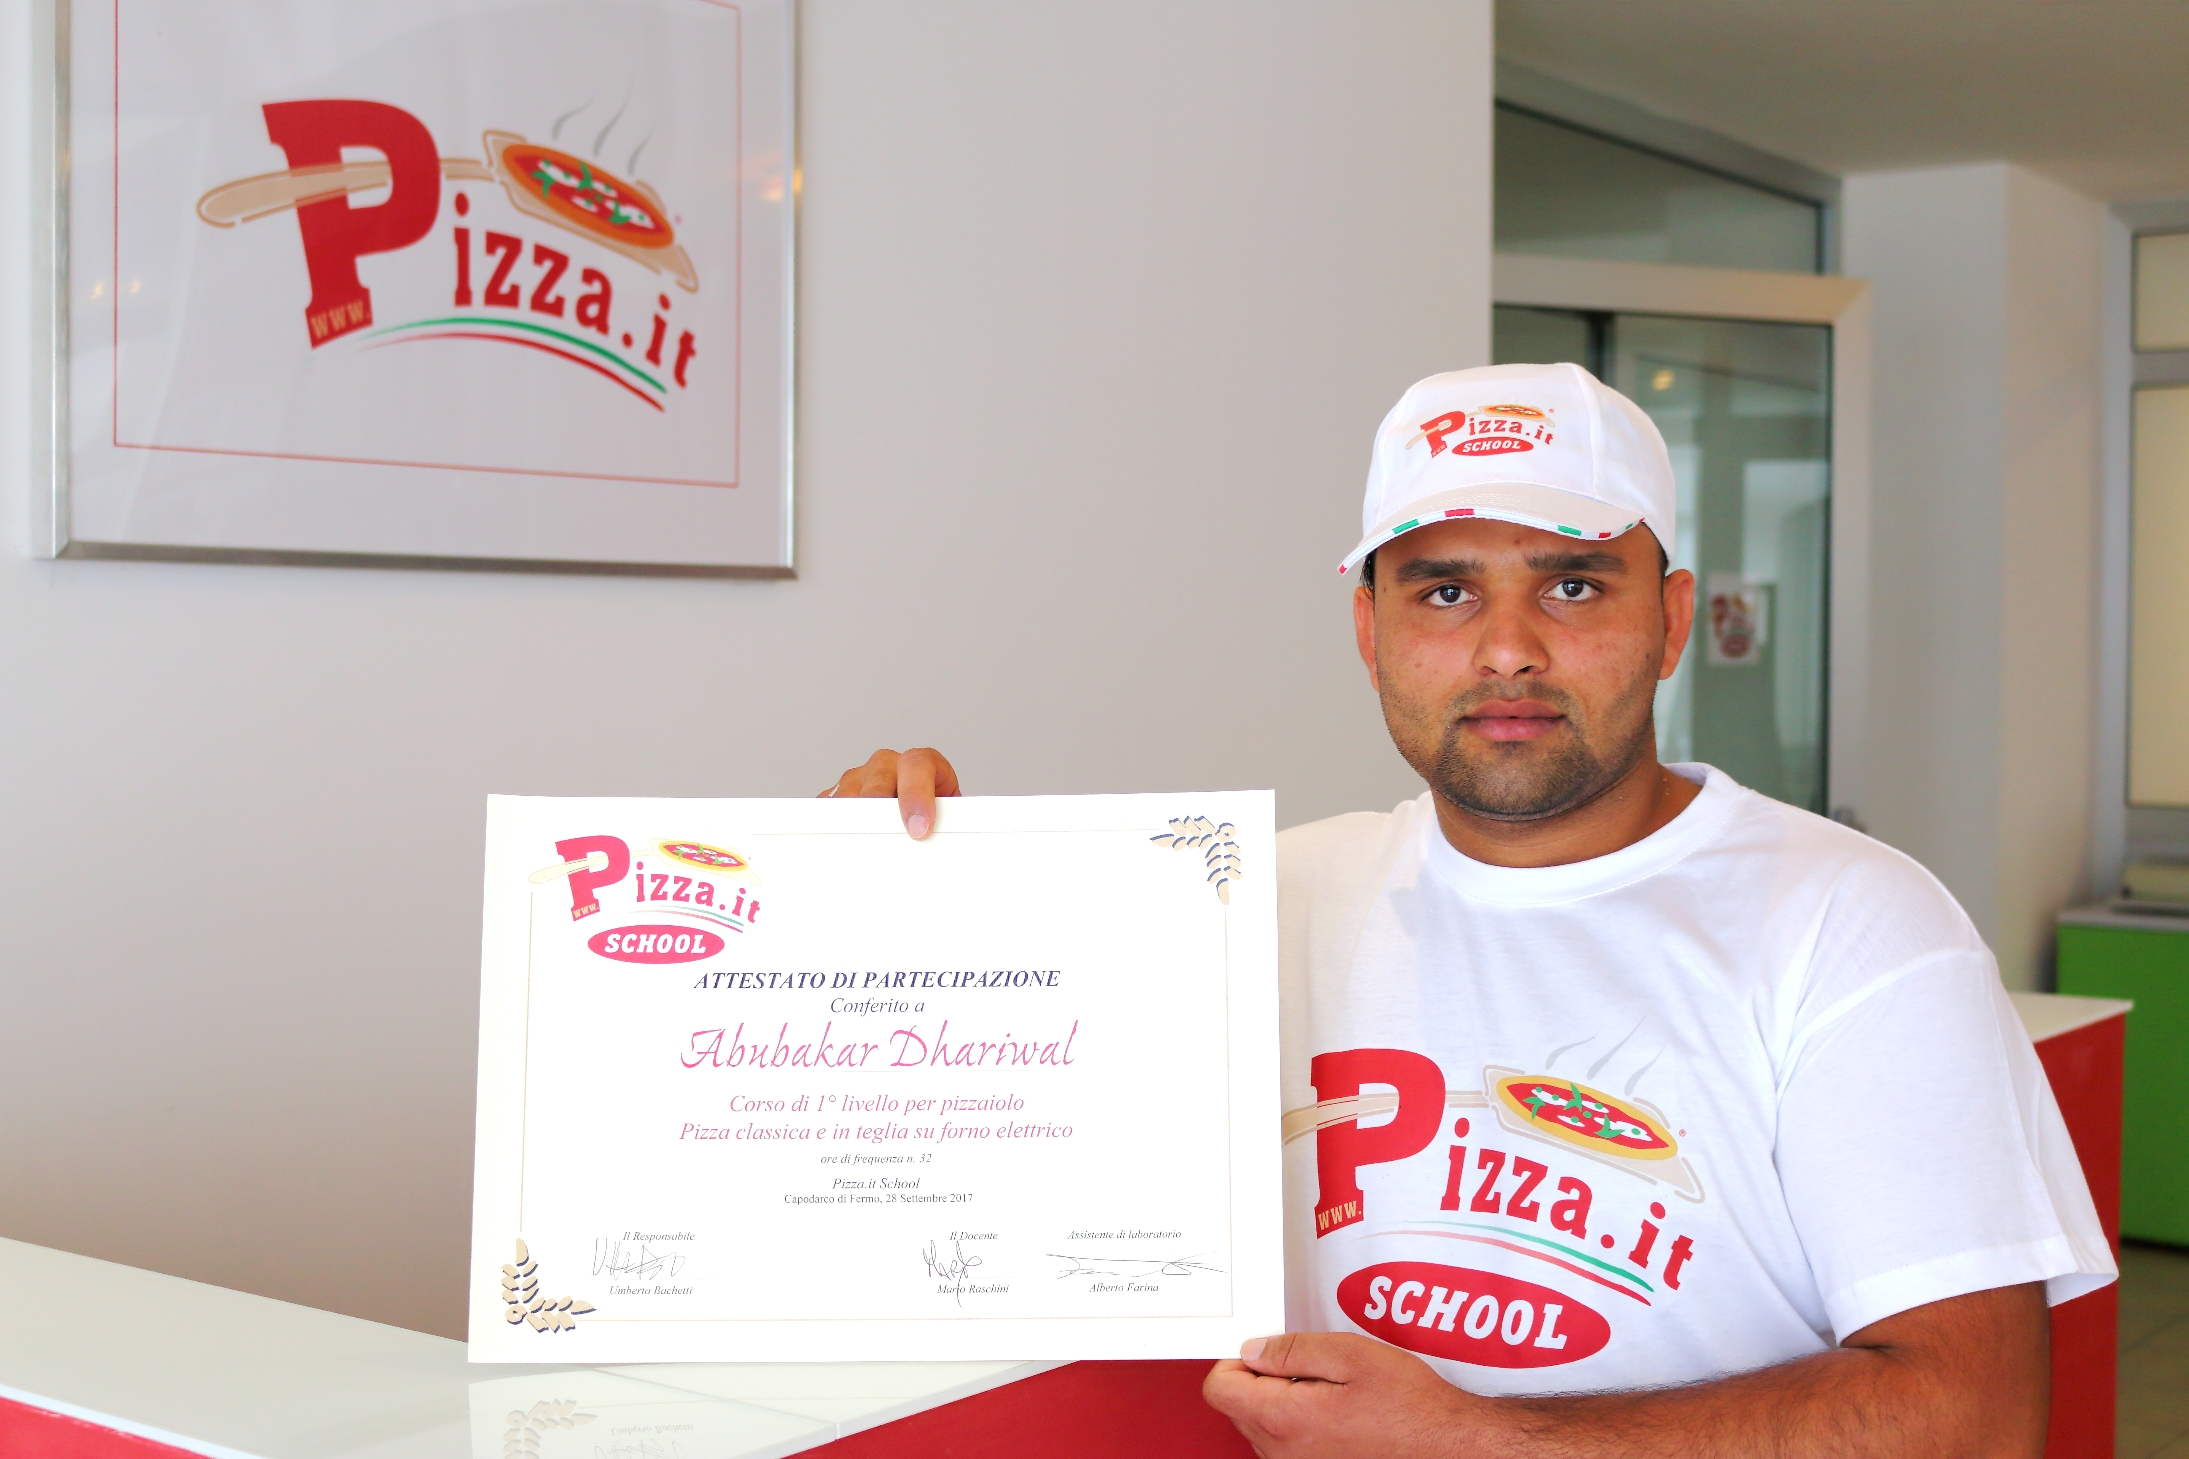 Abubakar Dhariwal - Pizza.it School